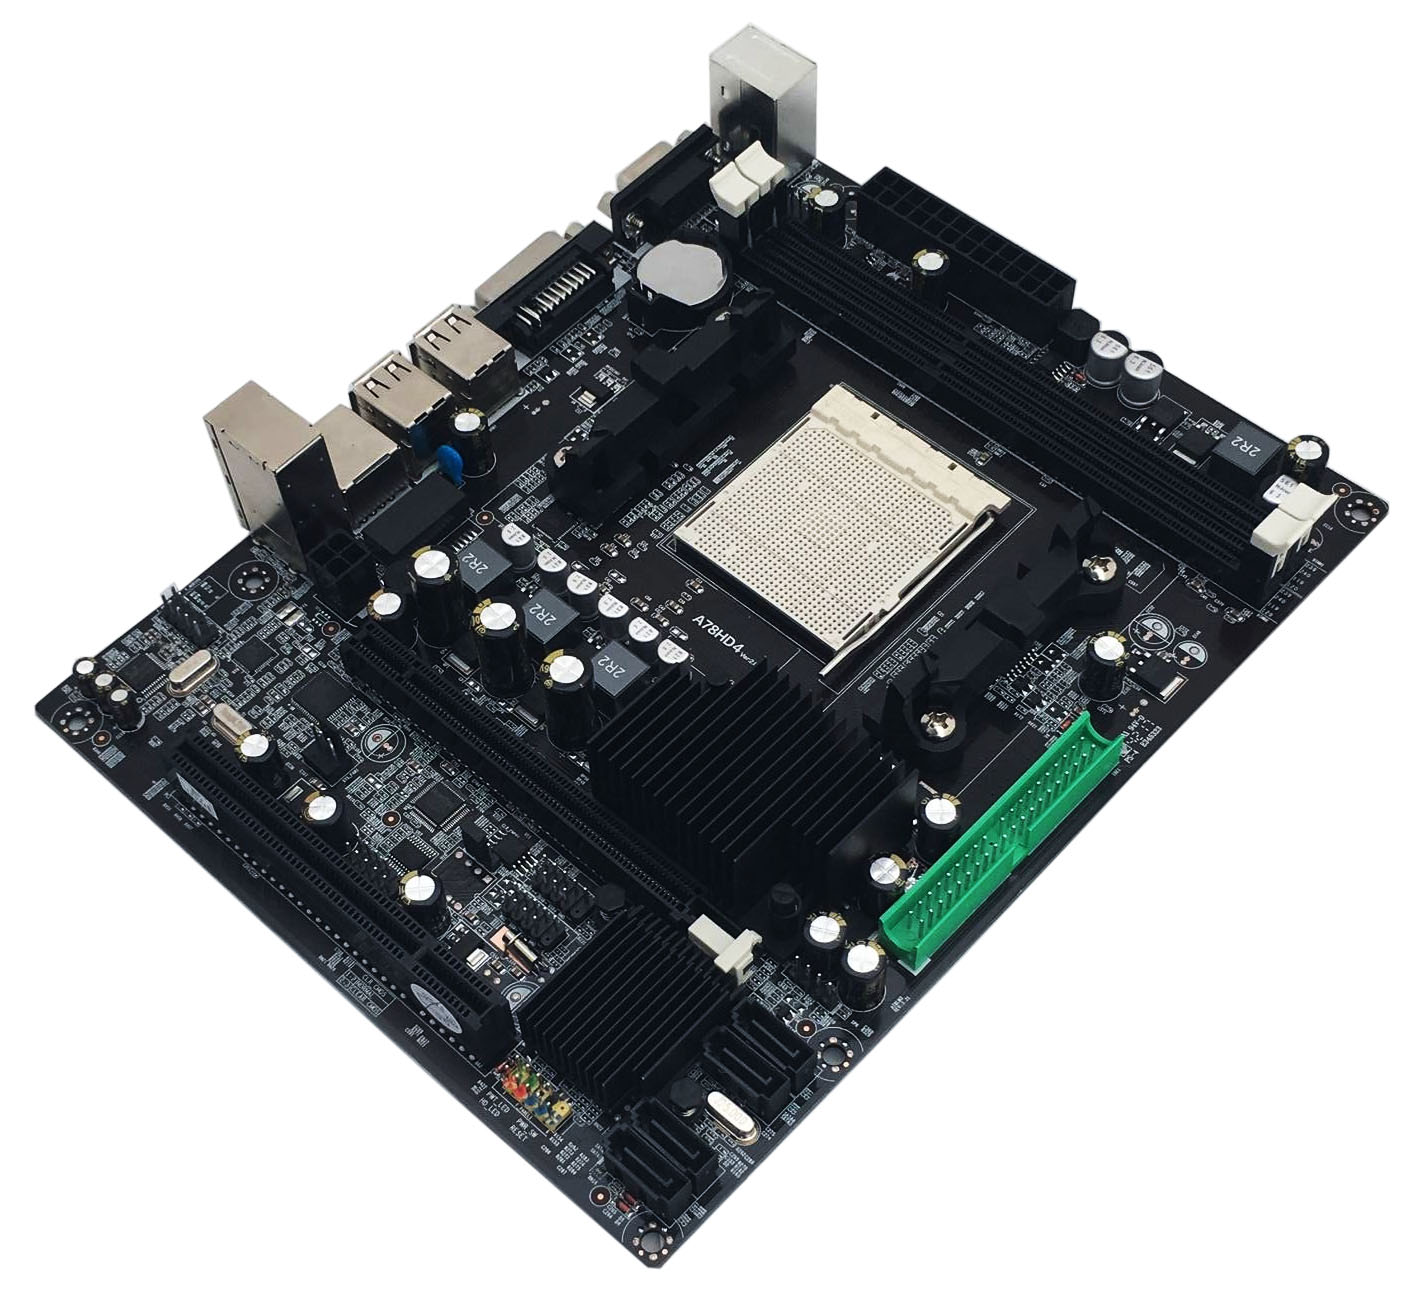 Mainboard A780 Practical Desktop PC Computer Motherboard Mainboard AM3 Supports DDR3 Dual Channel AM3 16G Memory Storage